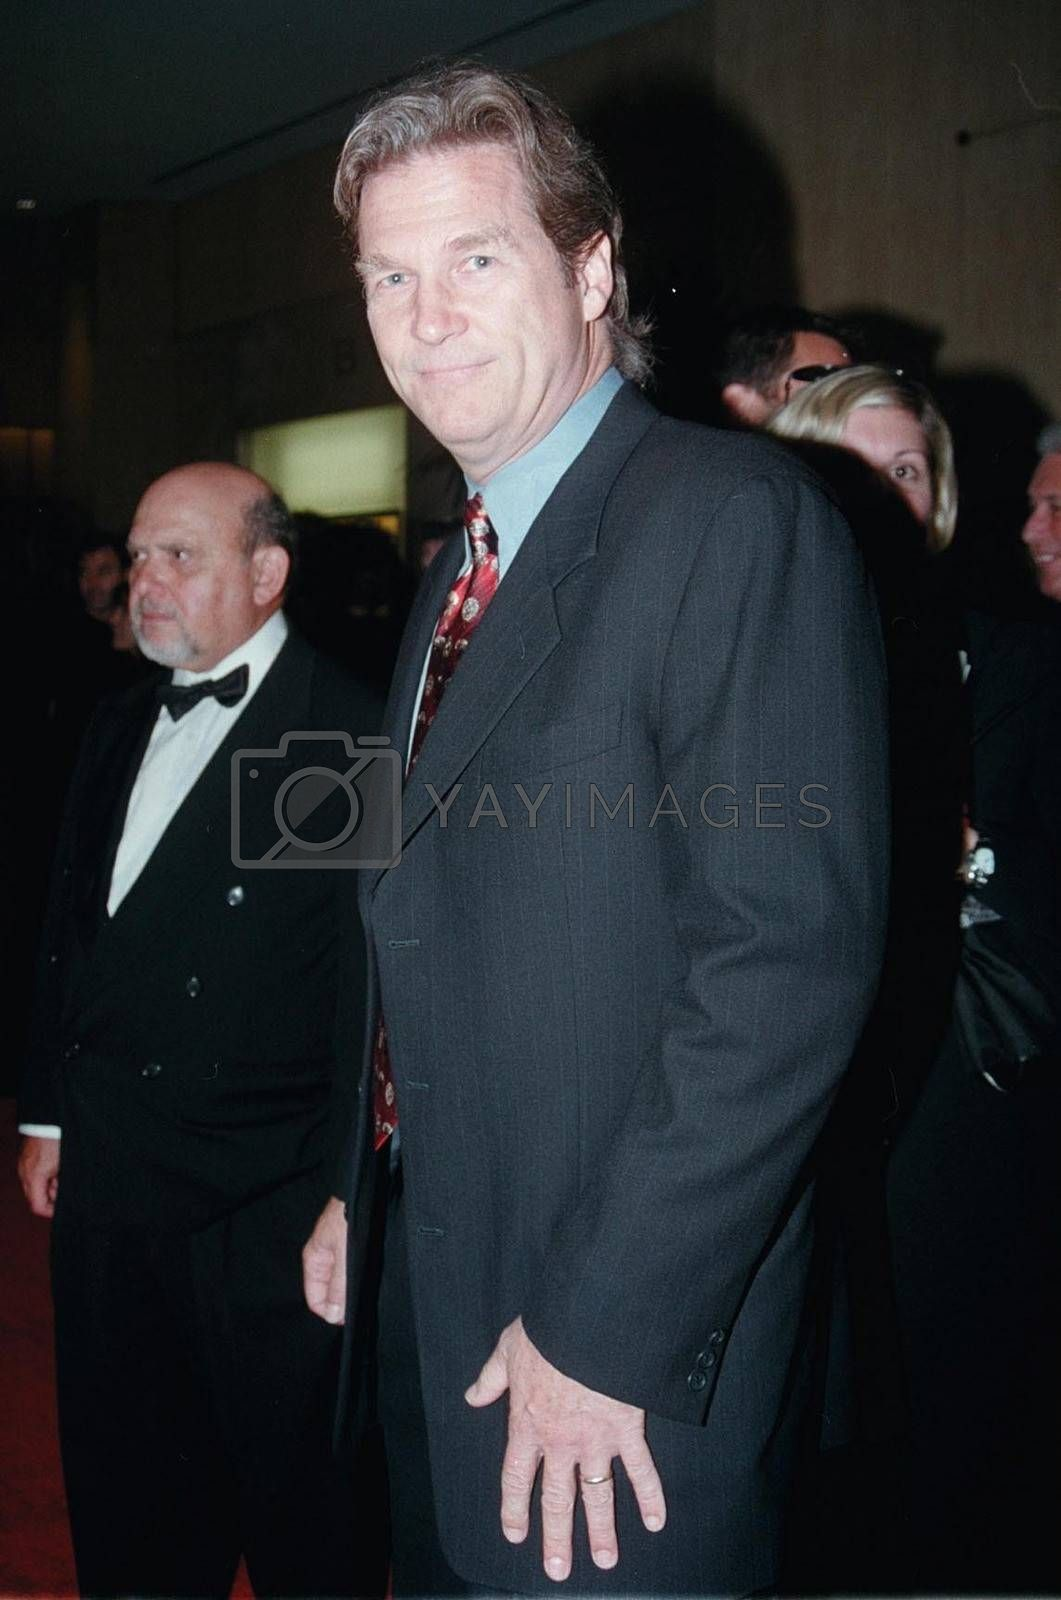 Jeff Bridges at the Hollywood Film Awards in Beverly Hills. 08-08-00